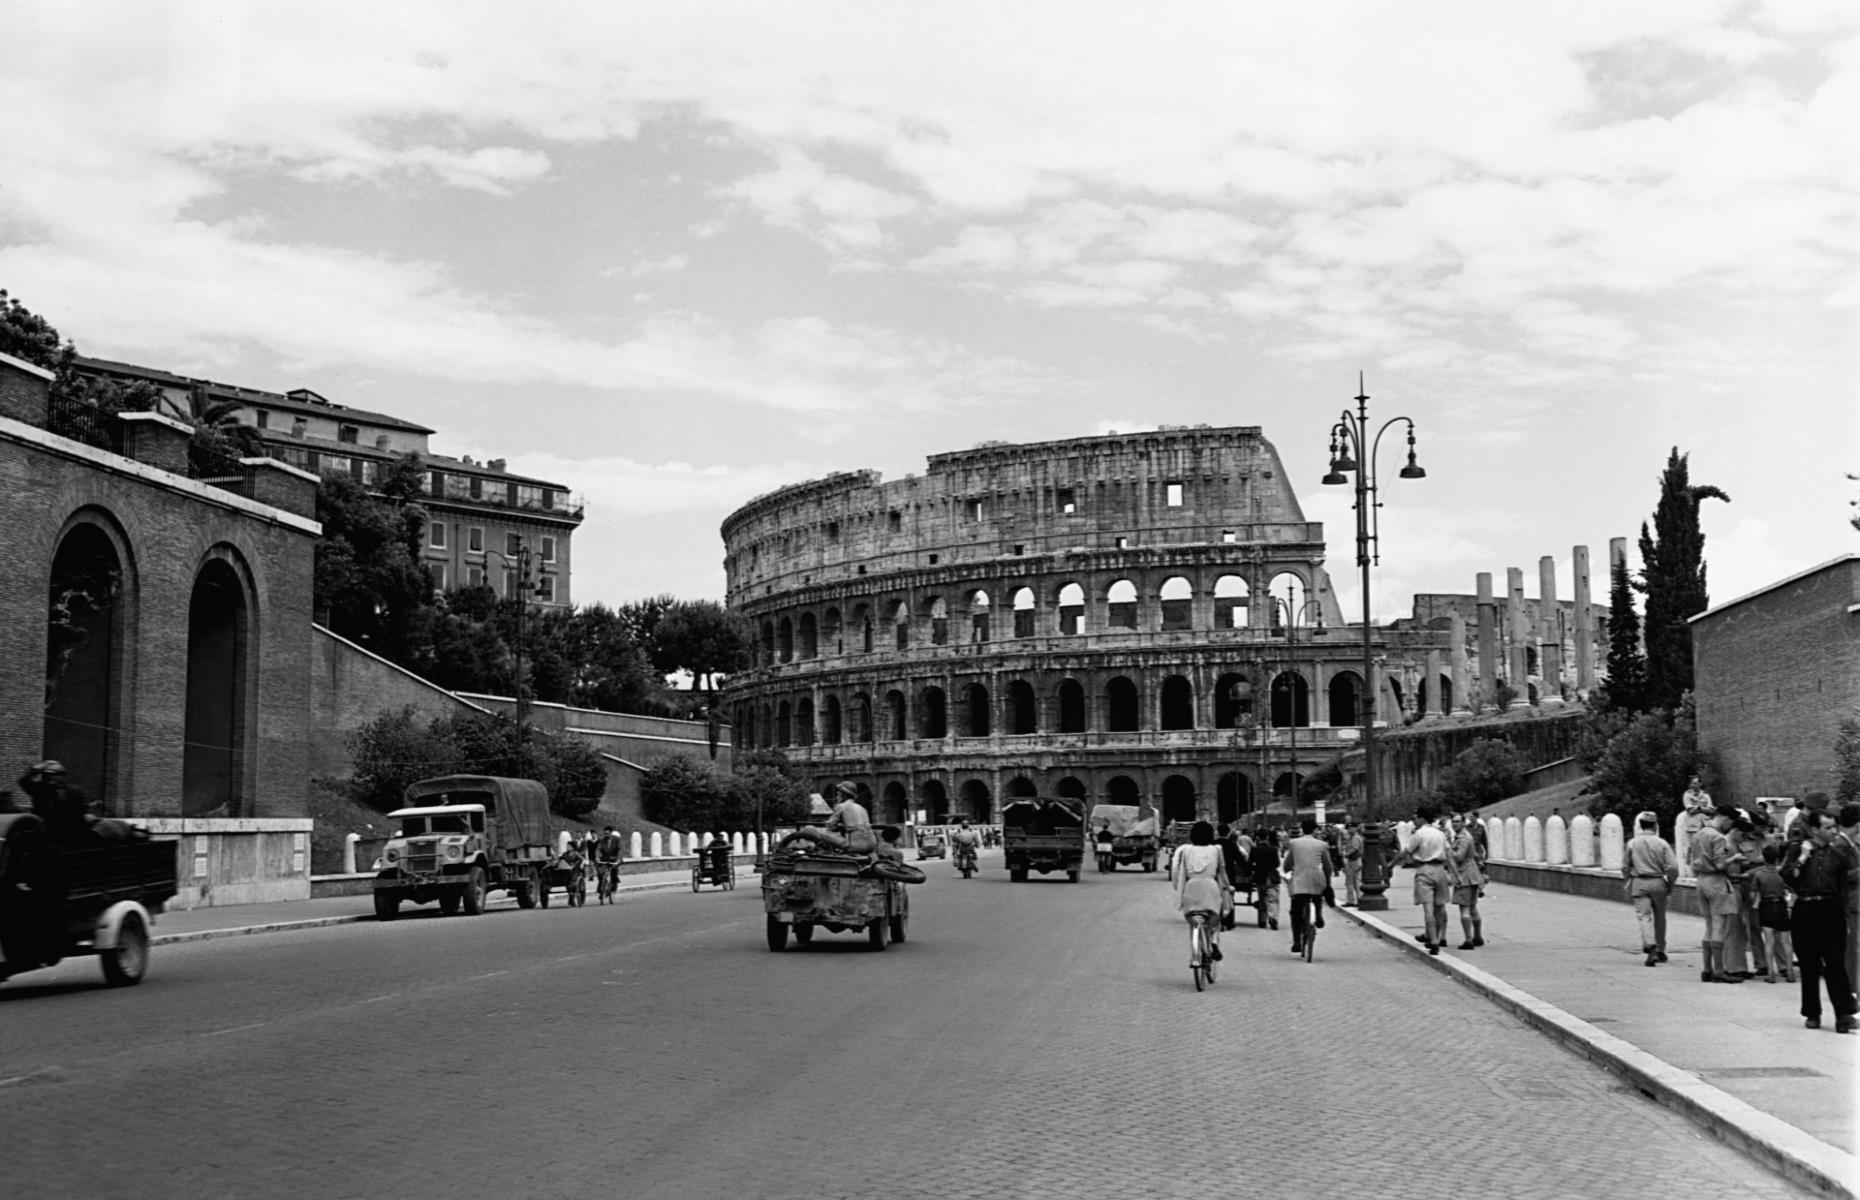 Slide 50 of 51: The Colosseum is a large stone amphitheater in Rome which was built in AD70-72. Commissioned by the Flavian Emperor Vespasian, who ruled the Roman Empire between AD69 and 79, it was created to host gladiatorial combats and other forms of public entertainment. The city of Rome became popular with tourists in the mid-1800s, although political upheaval led to a decline in tourism in the 1870s that lasted until the end of the Second World War. Looking quiet in this shot from 1944, it wasn't until the 1950s that tourism picked up again, thanks in part to popular movies including Roman Holiday and La Dolce Vita which were filmed in the city. Now discover the famouslandmarks that were almost destroyed